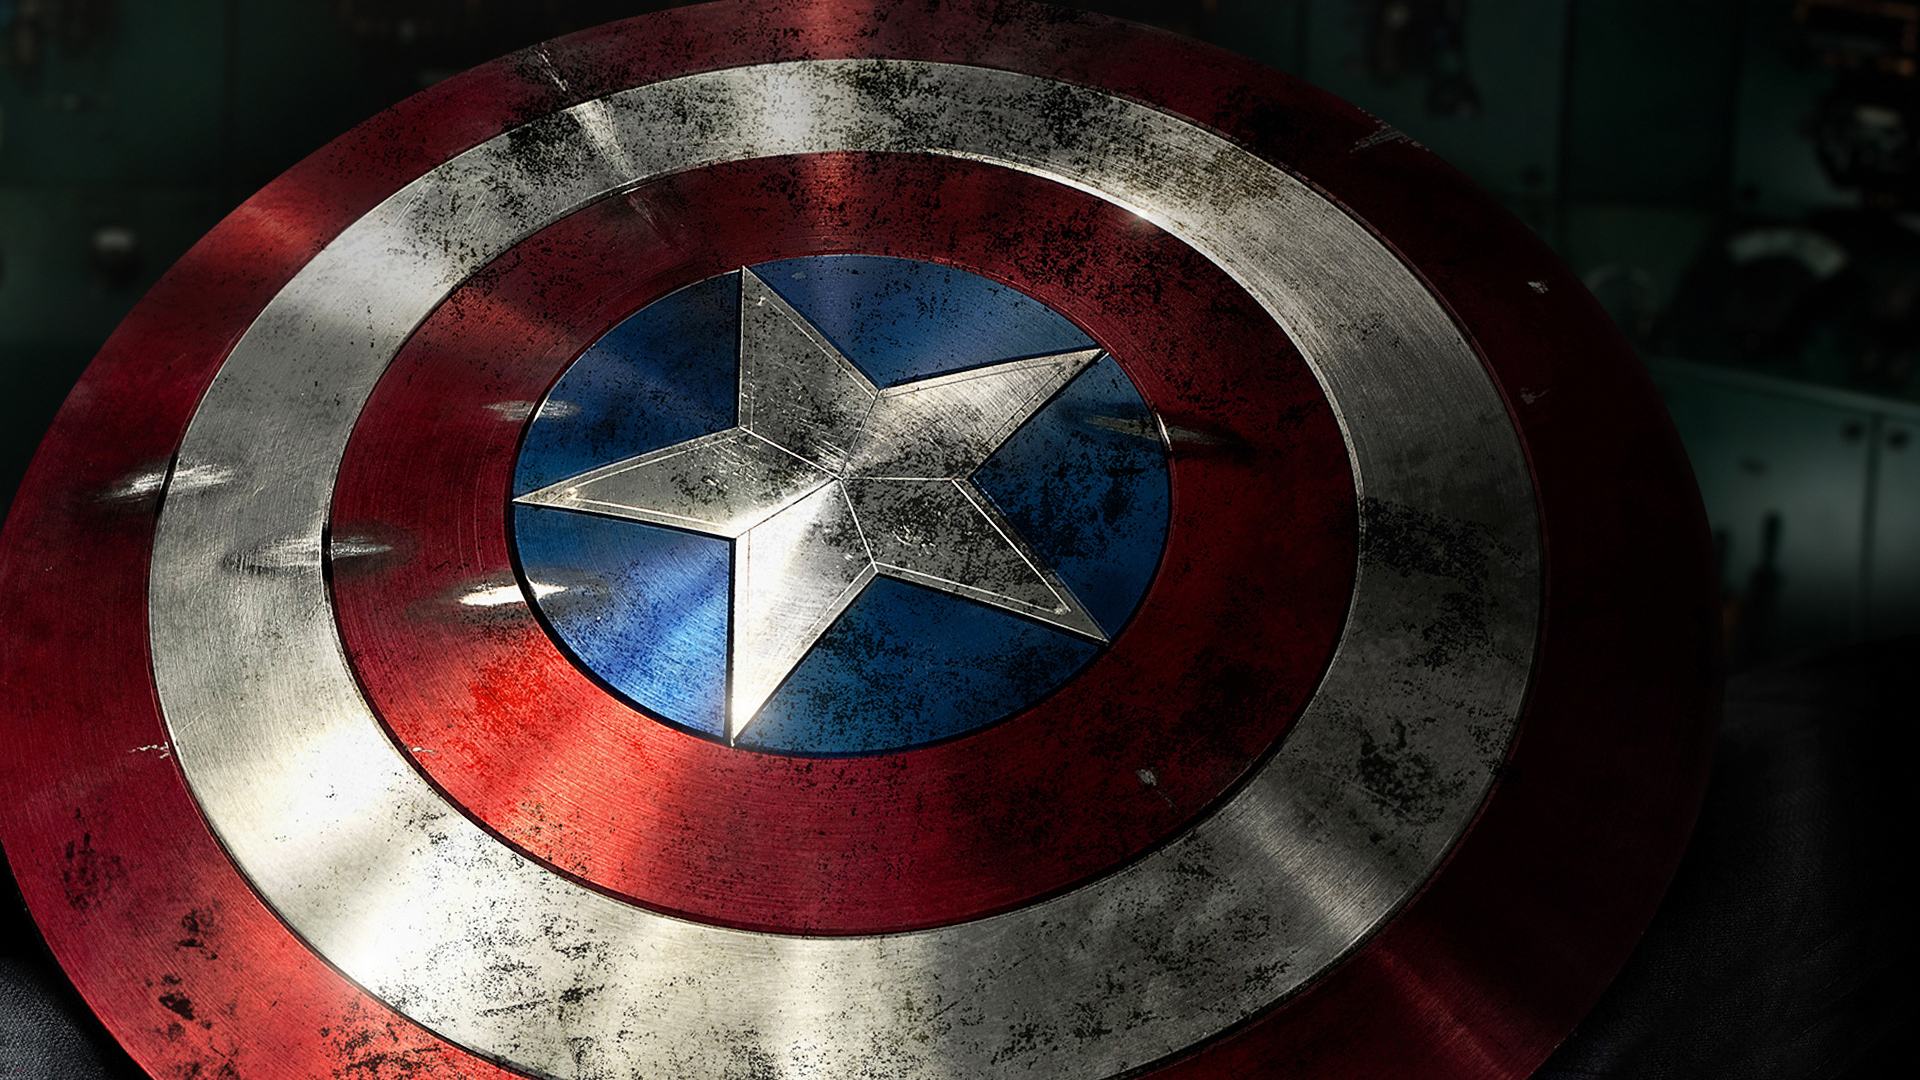 Hd wallpaper of captain america - Captain America Wallpapers Hd